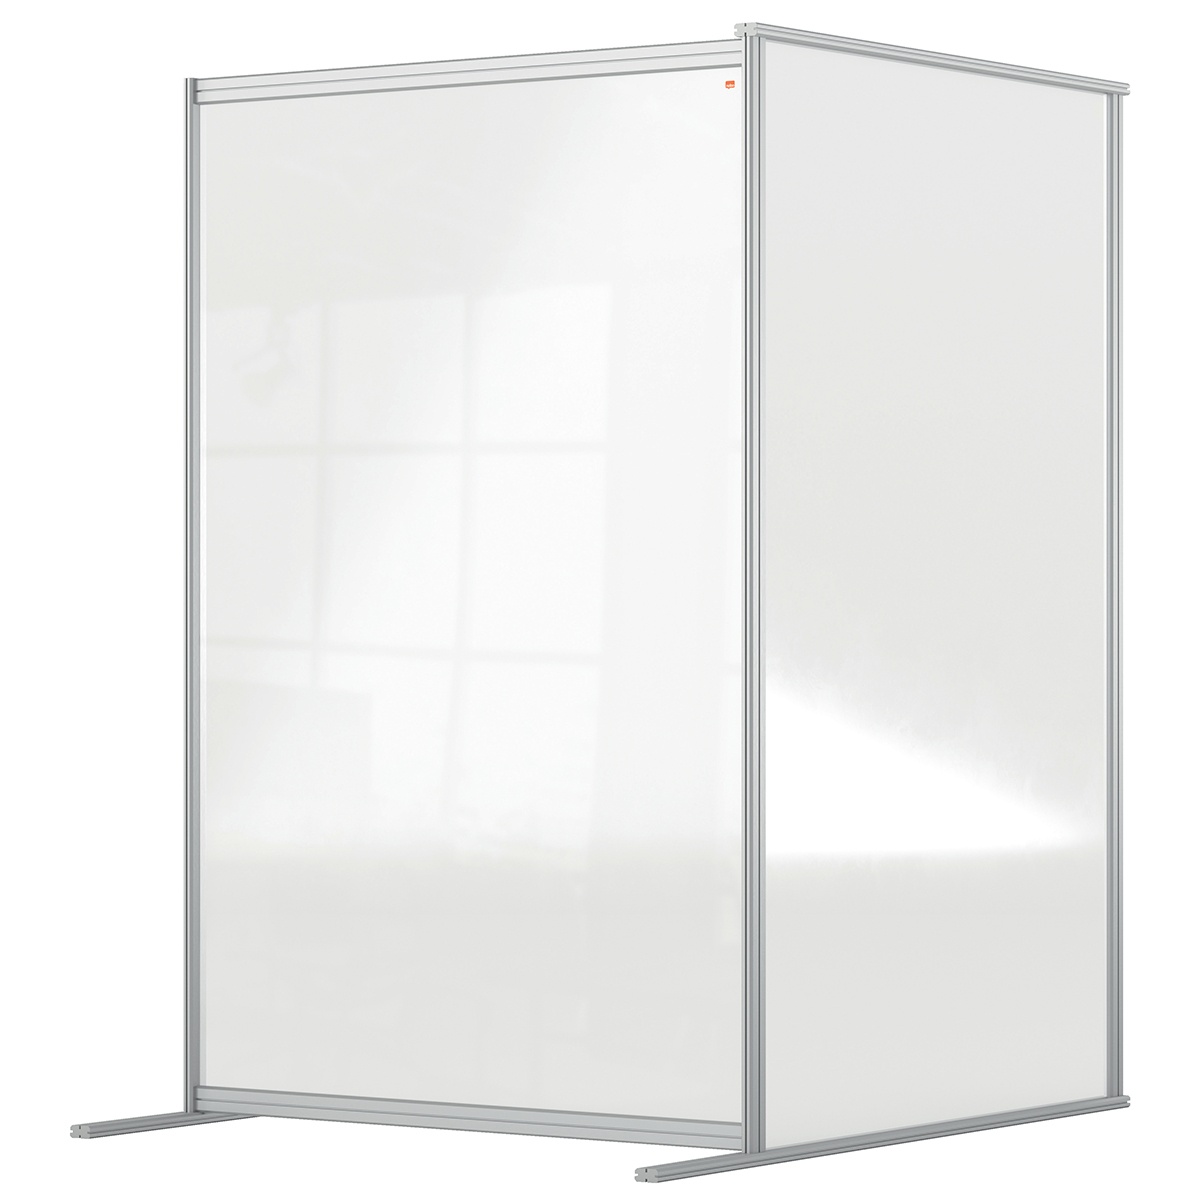 Nobo 1915518 Premium Plus Floor Divider 1200x1800mm Acrylic Extension